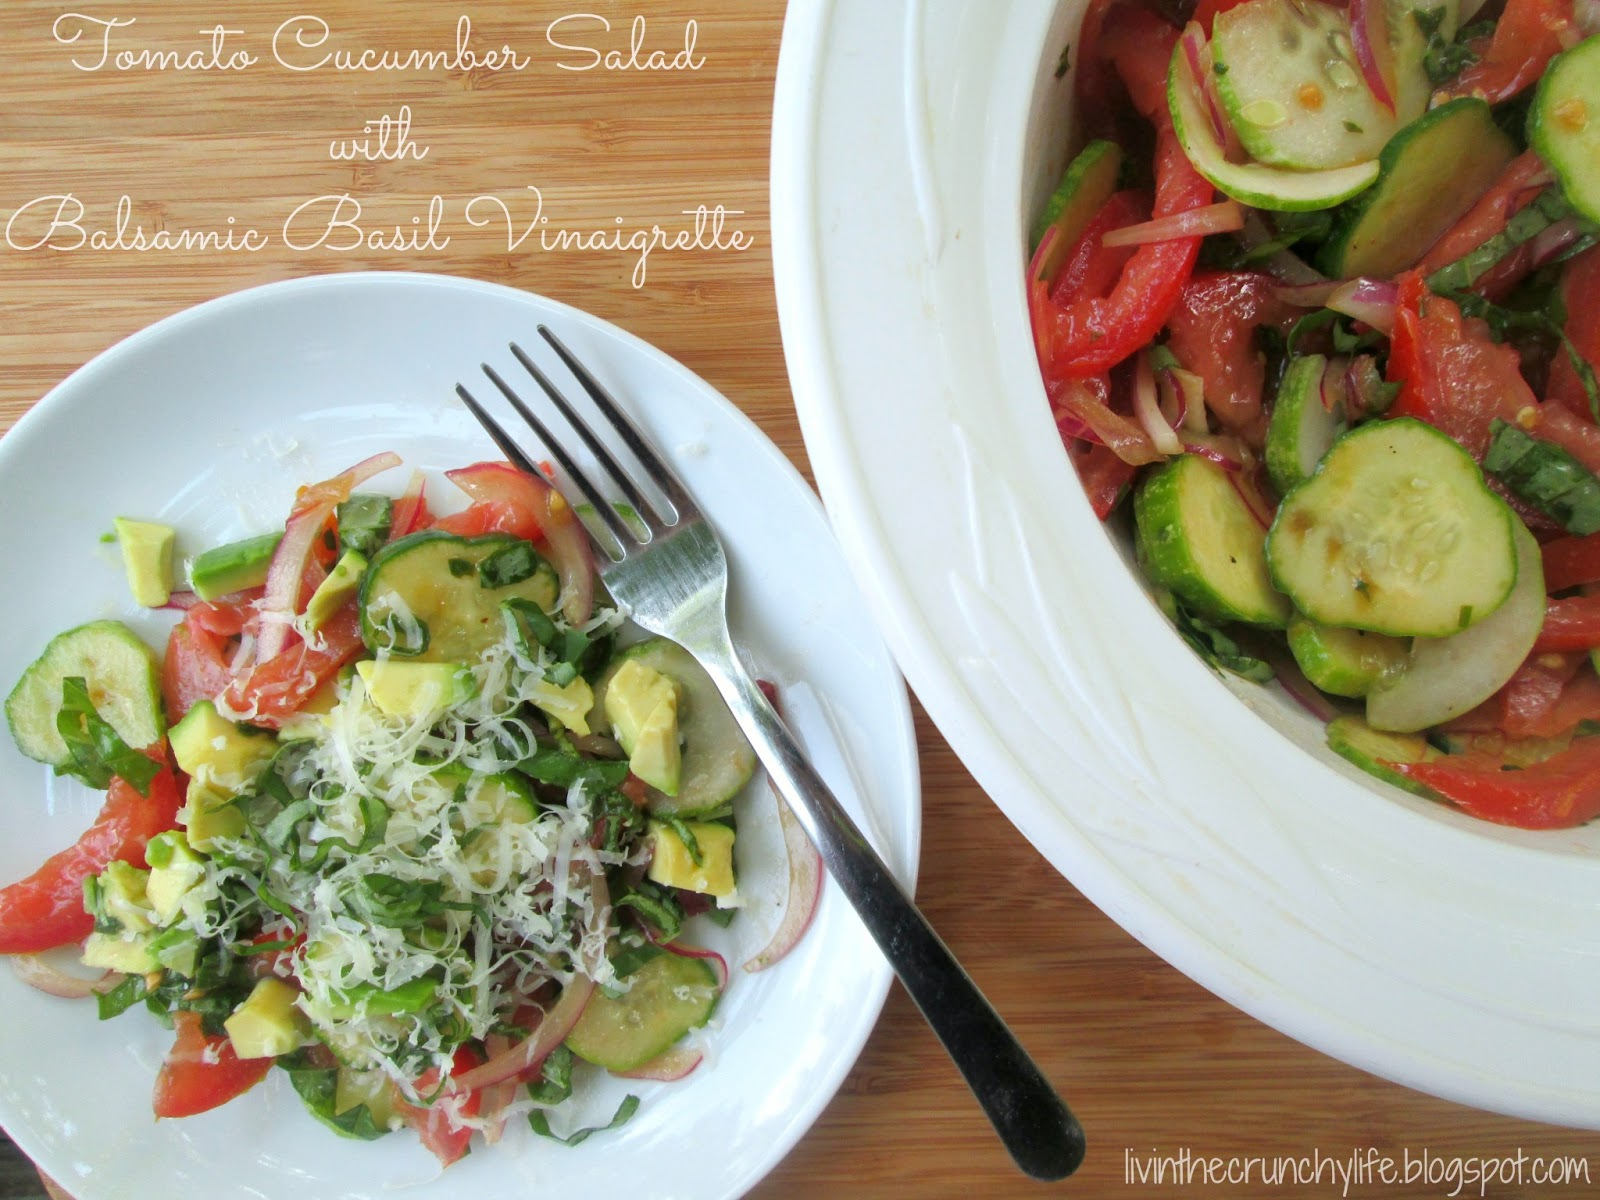 Tomato and Cucumber Salad with a Balsamic Basil Vinaigrette